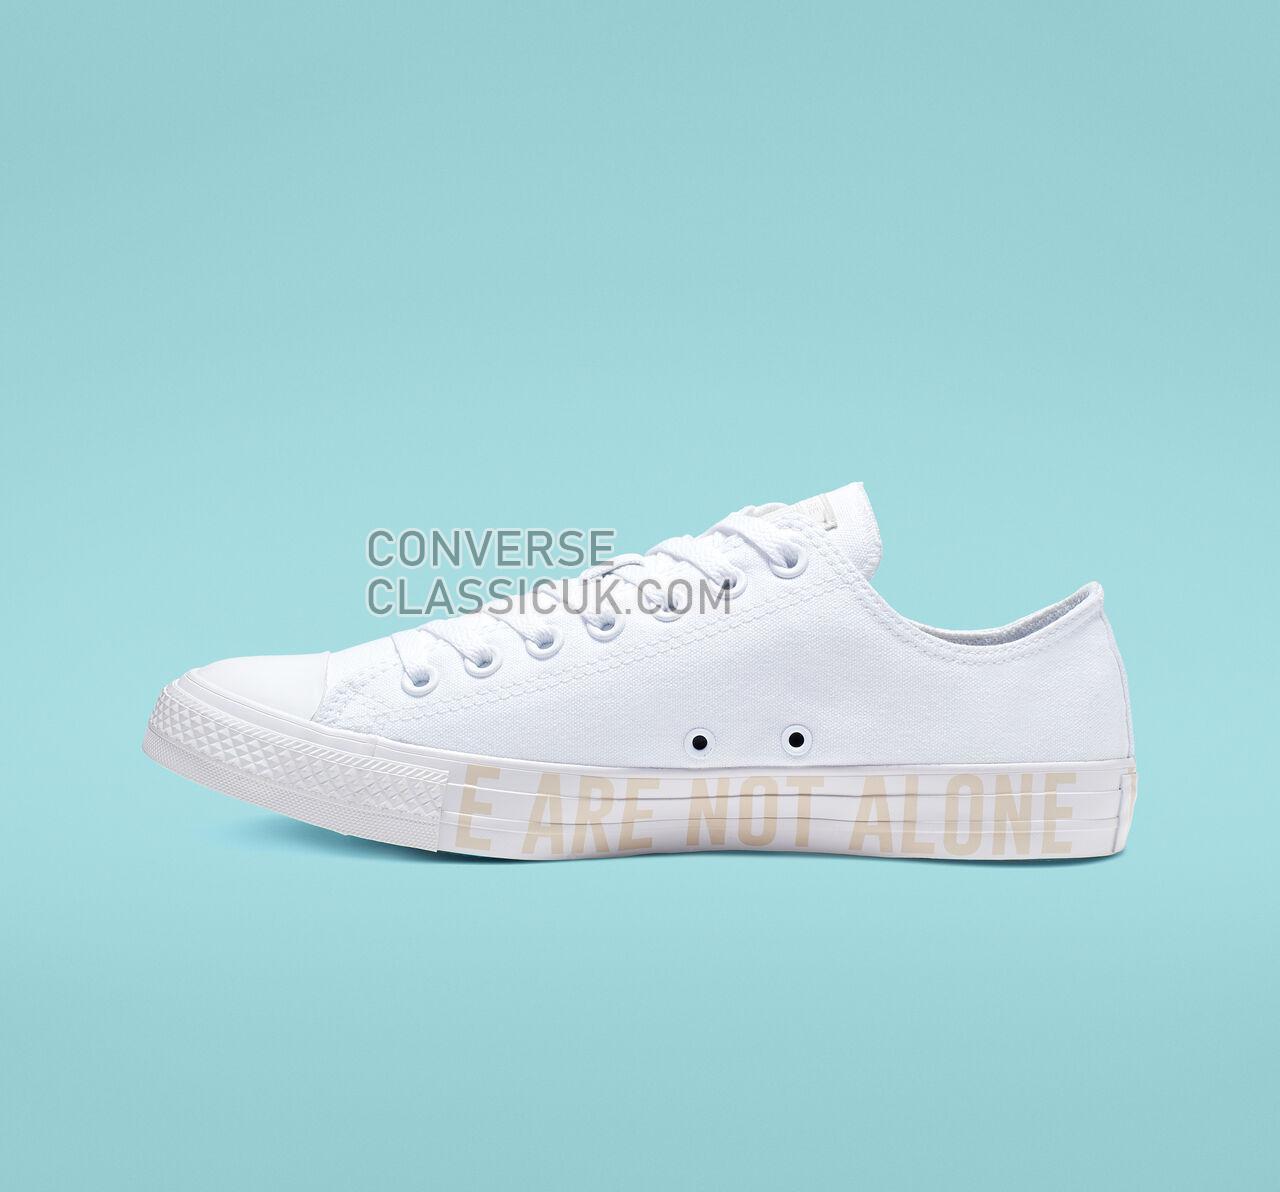 Converse Chuck Taylor All Star We Are Not Alone Low Top Mens Womens Unisex 165384F White/Pale Putty/White Shoes